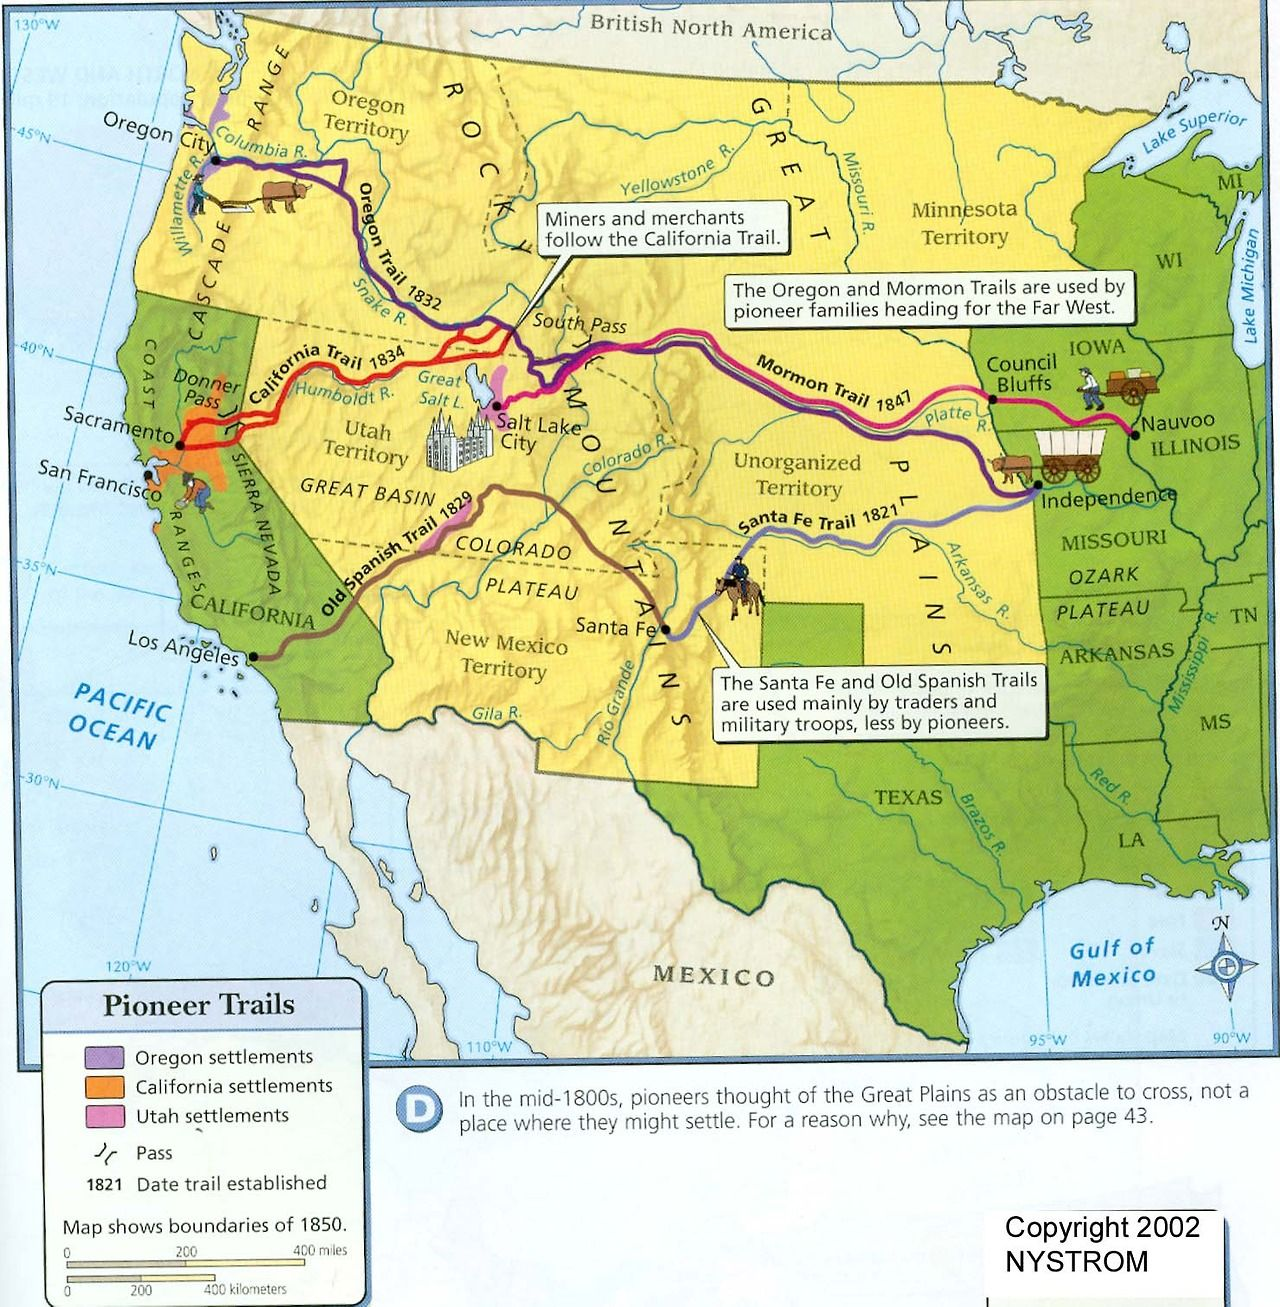 This Map Shows The Routes Of The Pioneer Trails By Which